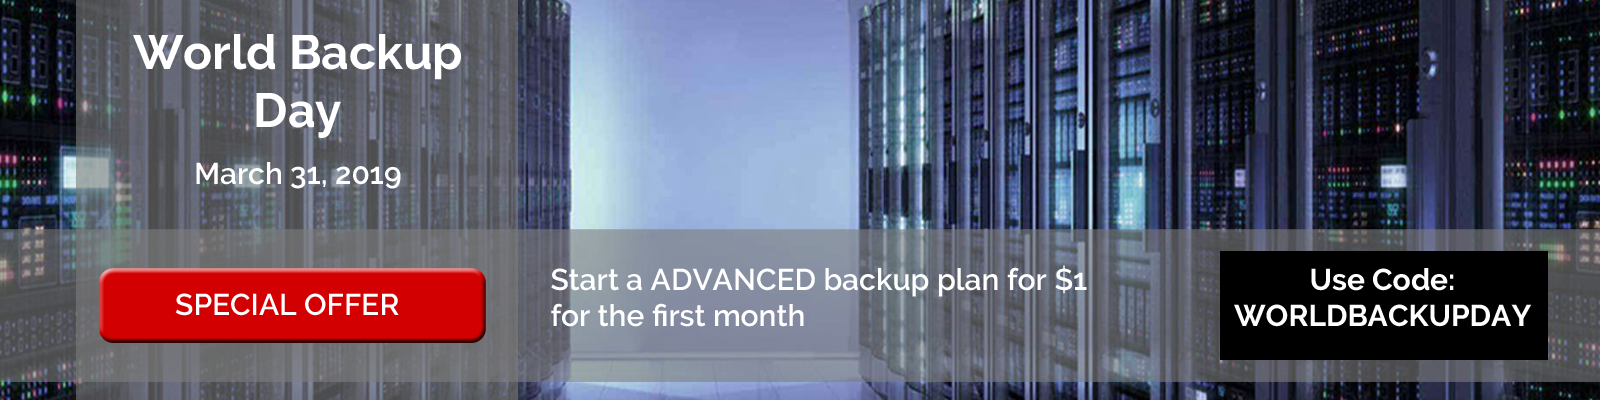 world backup day offer